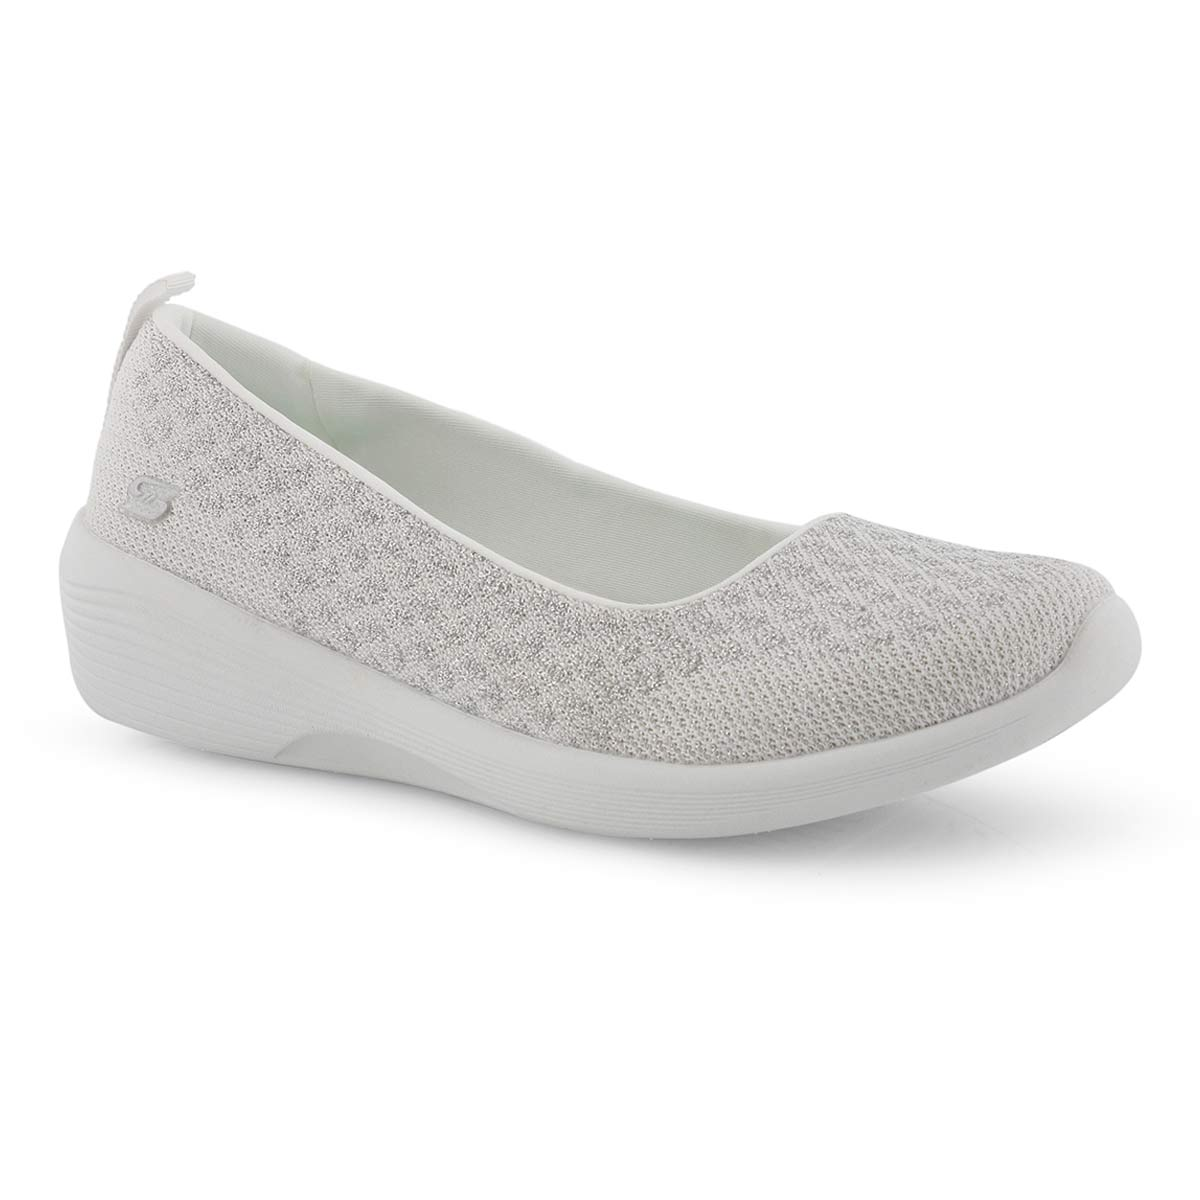 Lds Arya In the Stars wht slip on